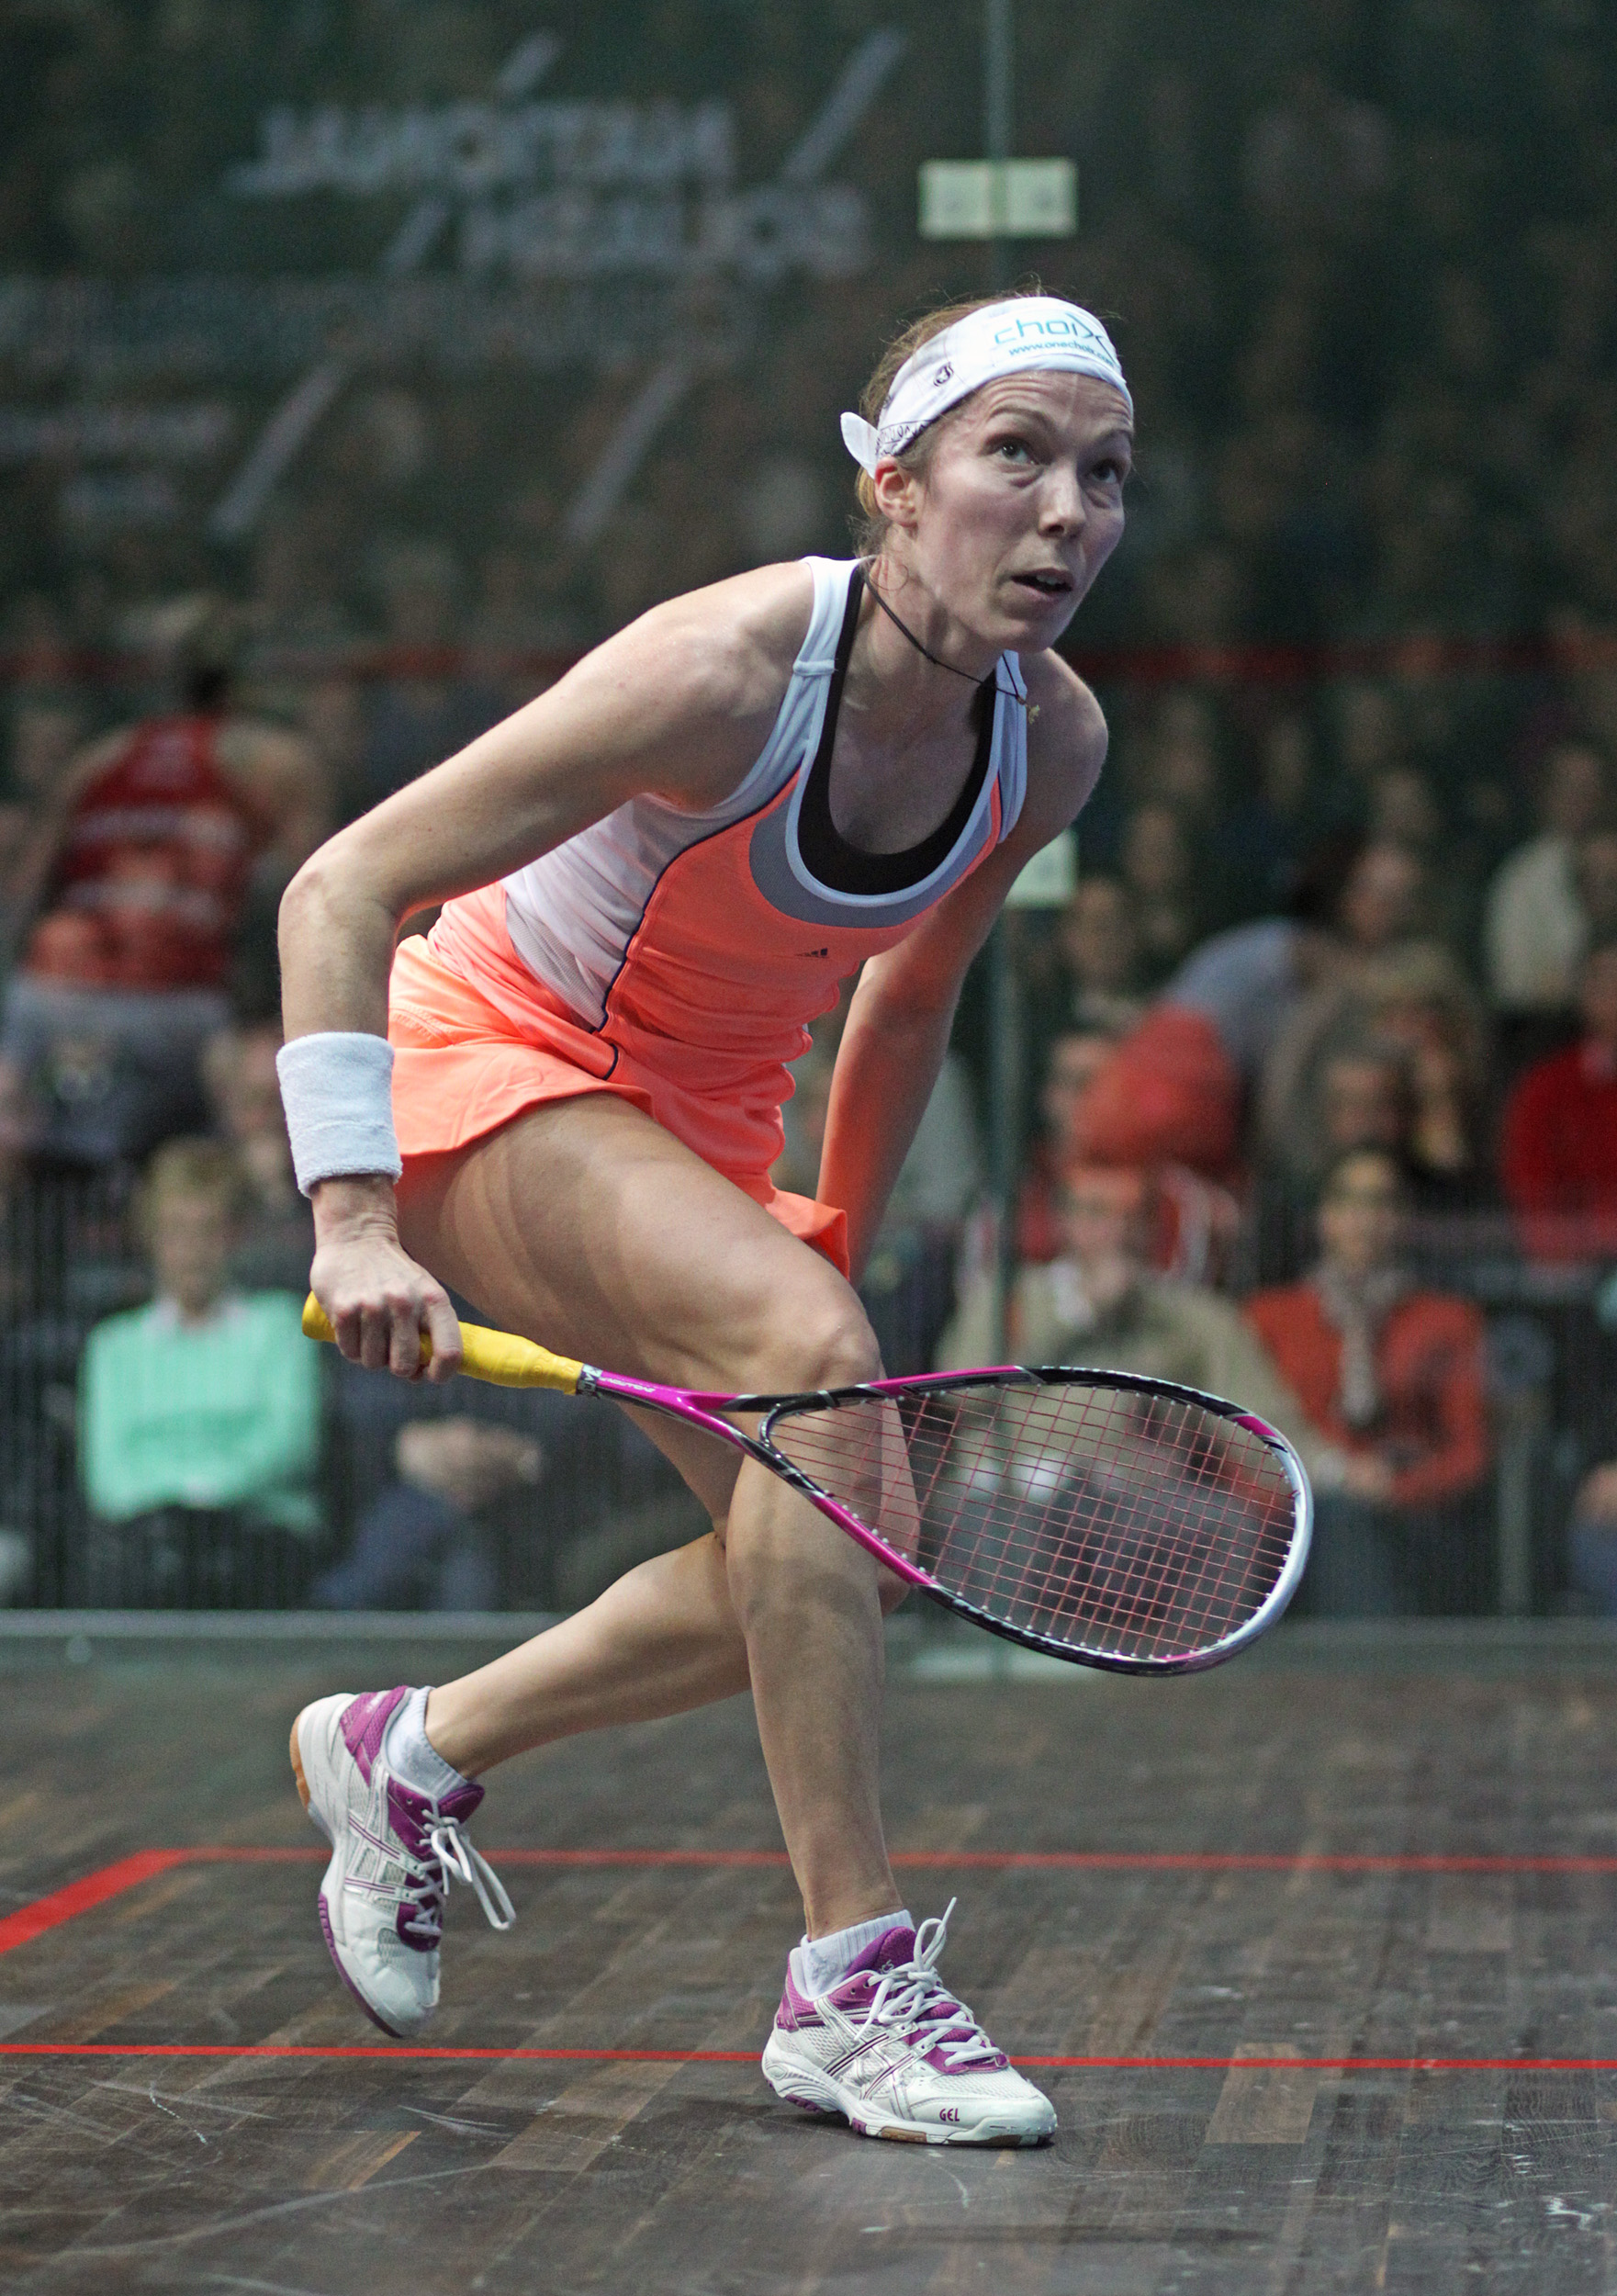 Perry is 7 years older than her nearest-aged rival in the world top 10